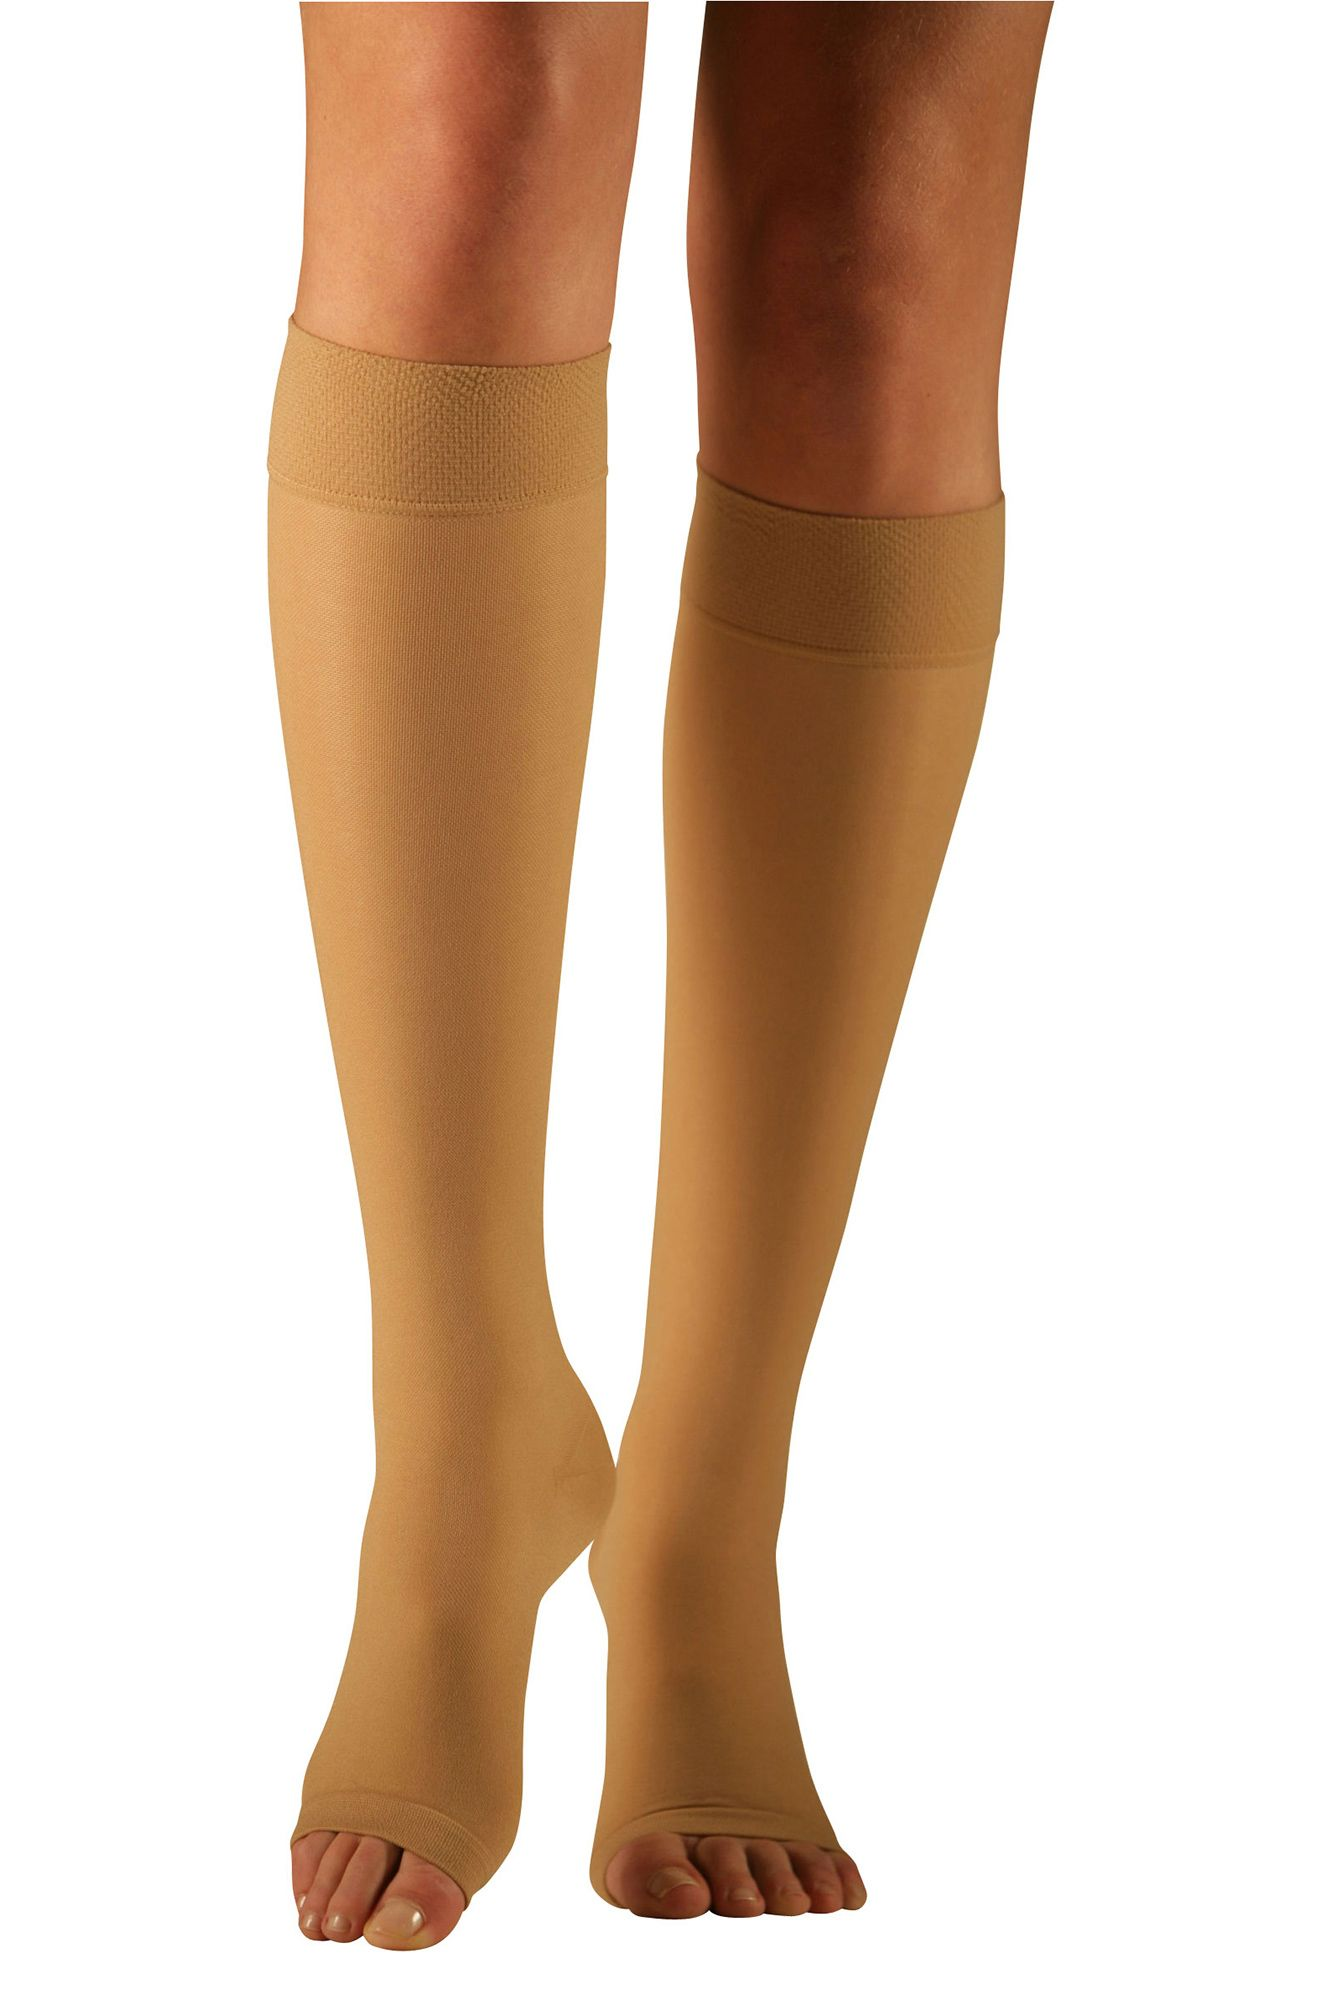 3a1b379c9b Sigvaris Magic Class 1 Calf Compression Stockings - Daylong